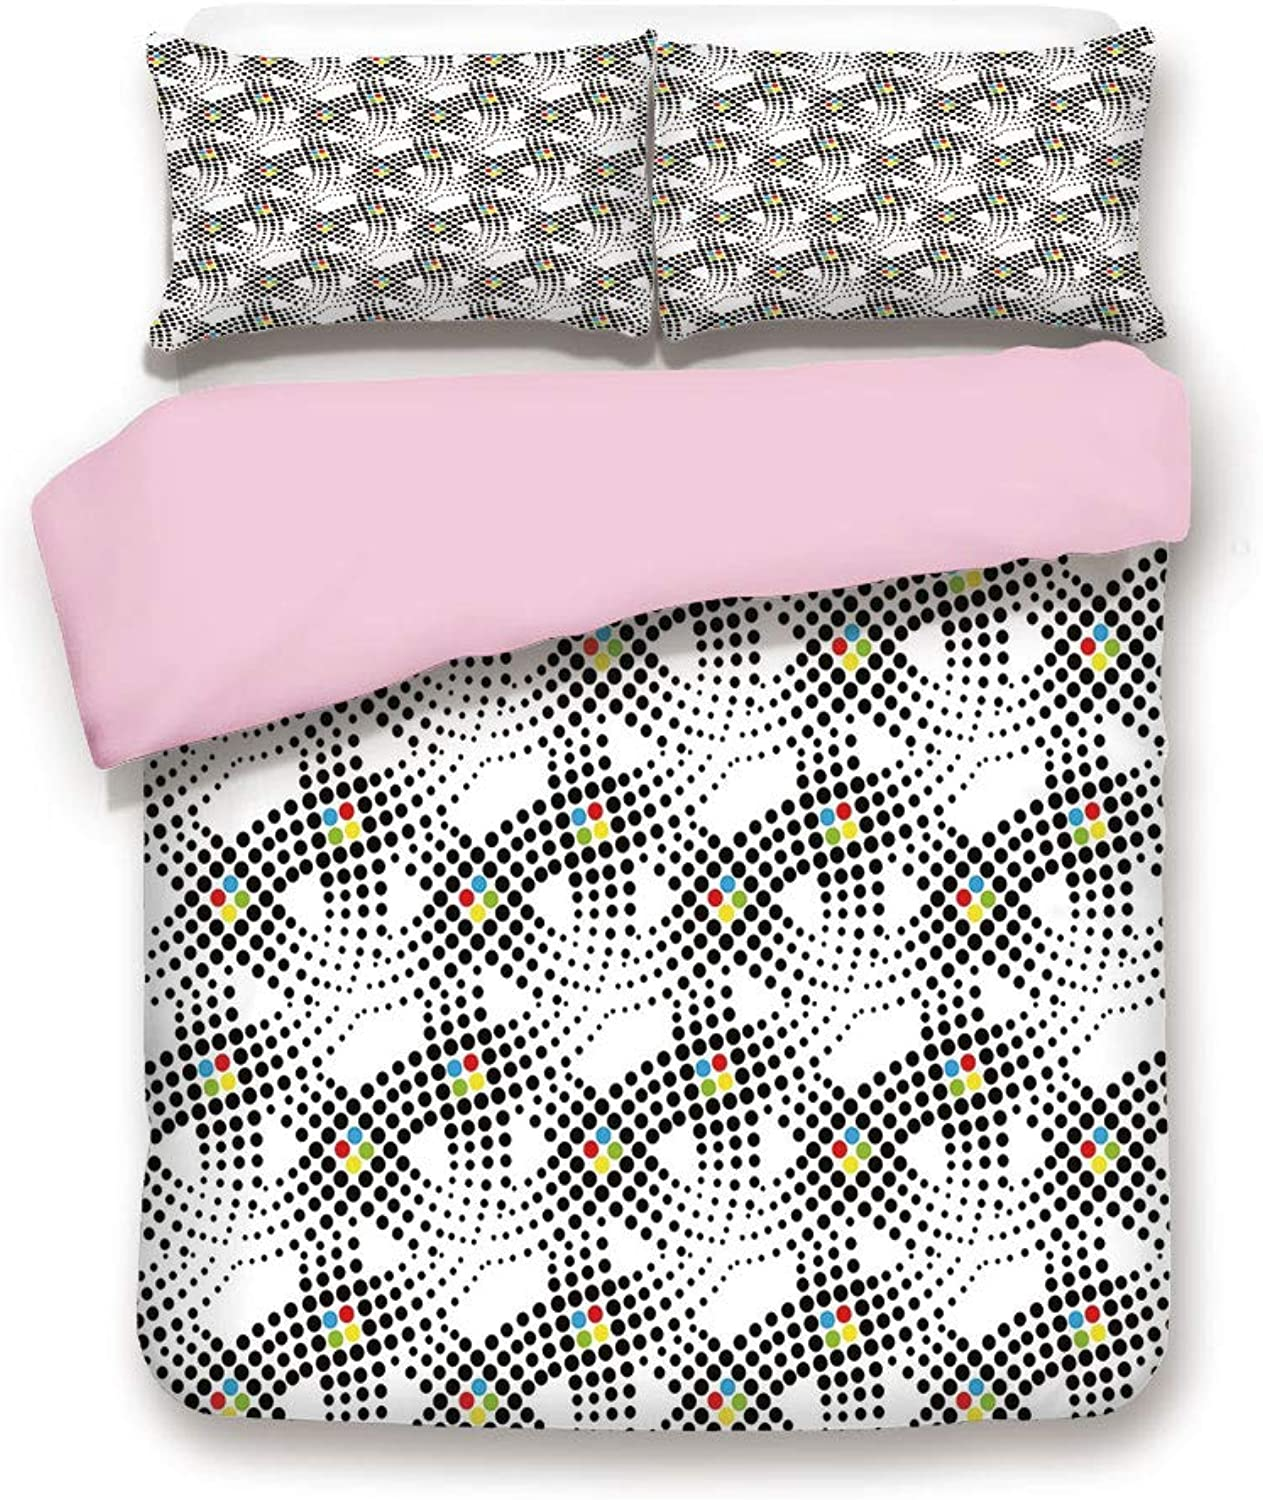 Pink Duvet Cover Set,Twin Size,Traditional Polka Dots Contrasting color Scheme Different Circle Designs Cubism Decorative,Decorative 3 Piece Bedding Set with 2 Pillow Sham,Best Gift For Girls Women,Mu